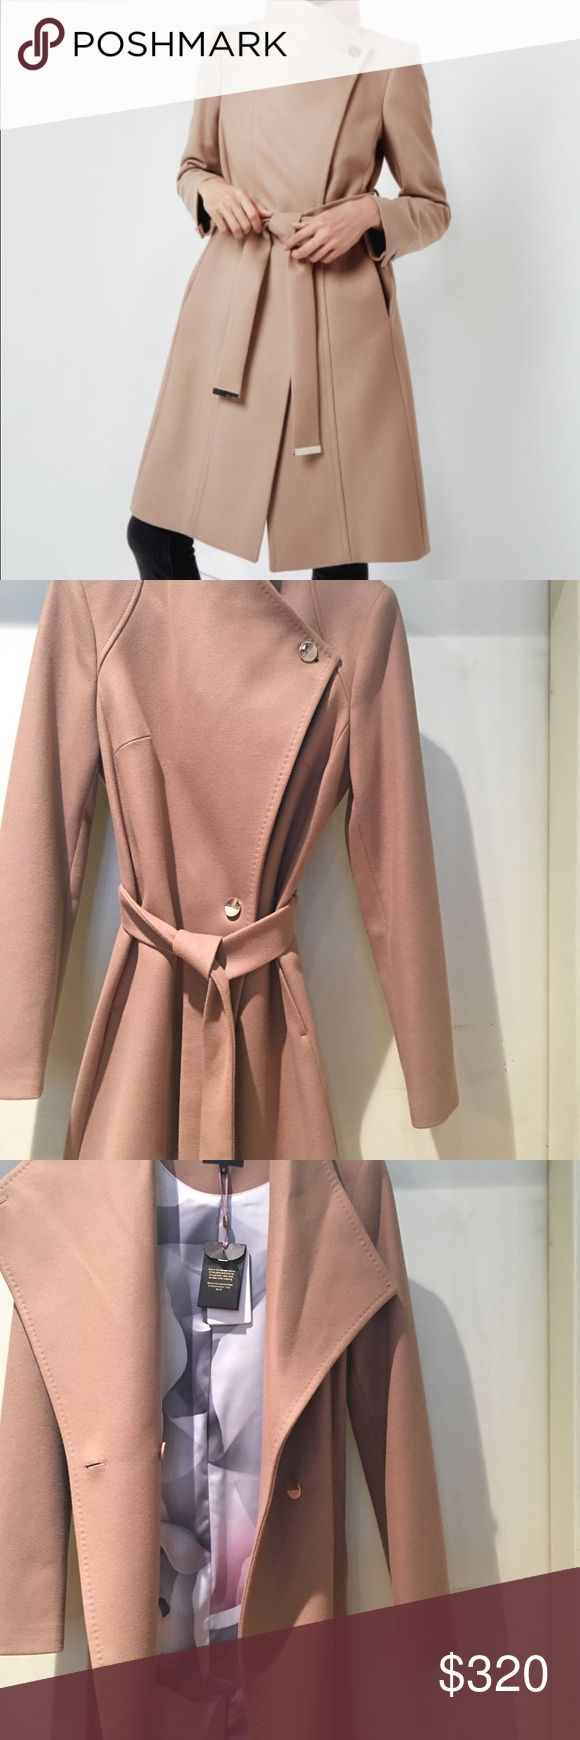 Ted Baker wrap coat Camel coat with silk floral lining, NEW, Ted Baker size 2 US size 6 Ted Baker Jackets & Coats Pea Coats